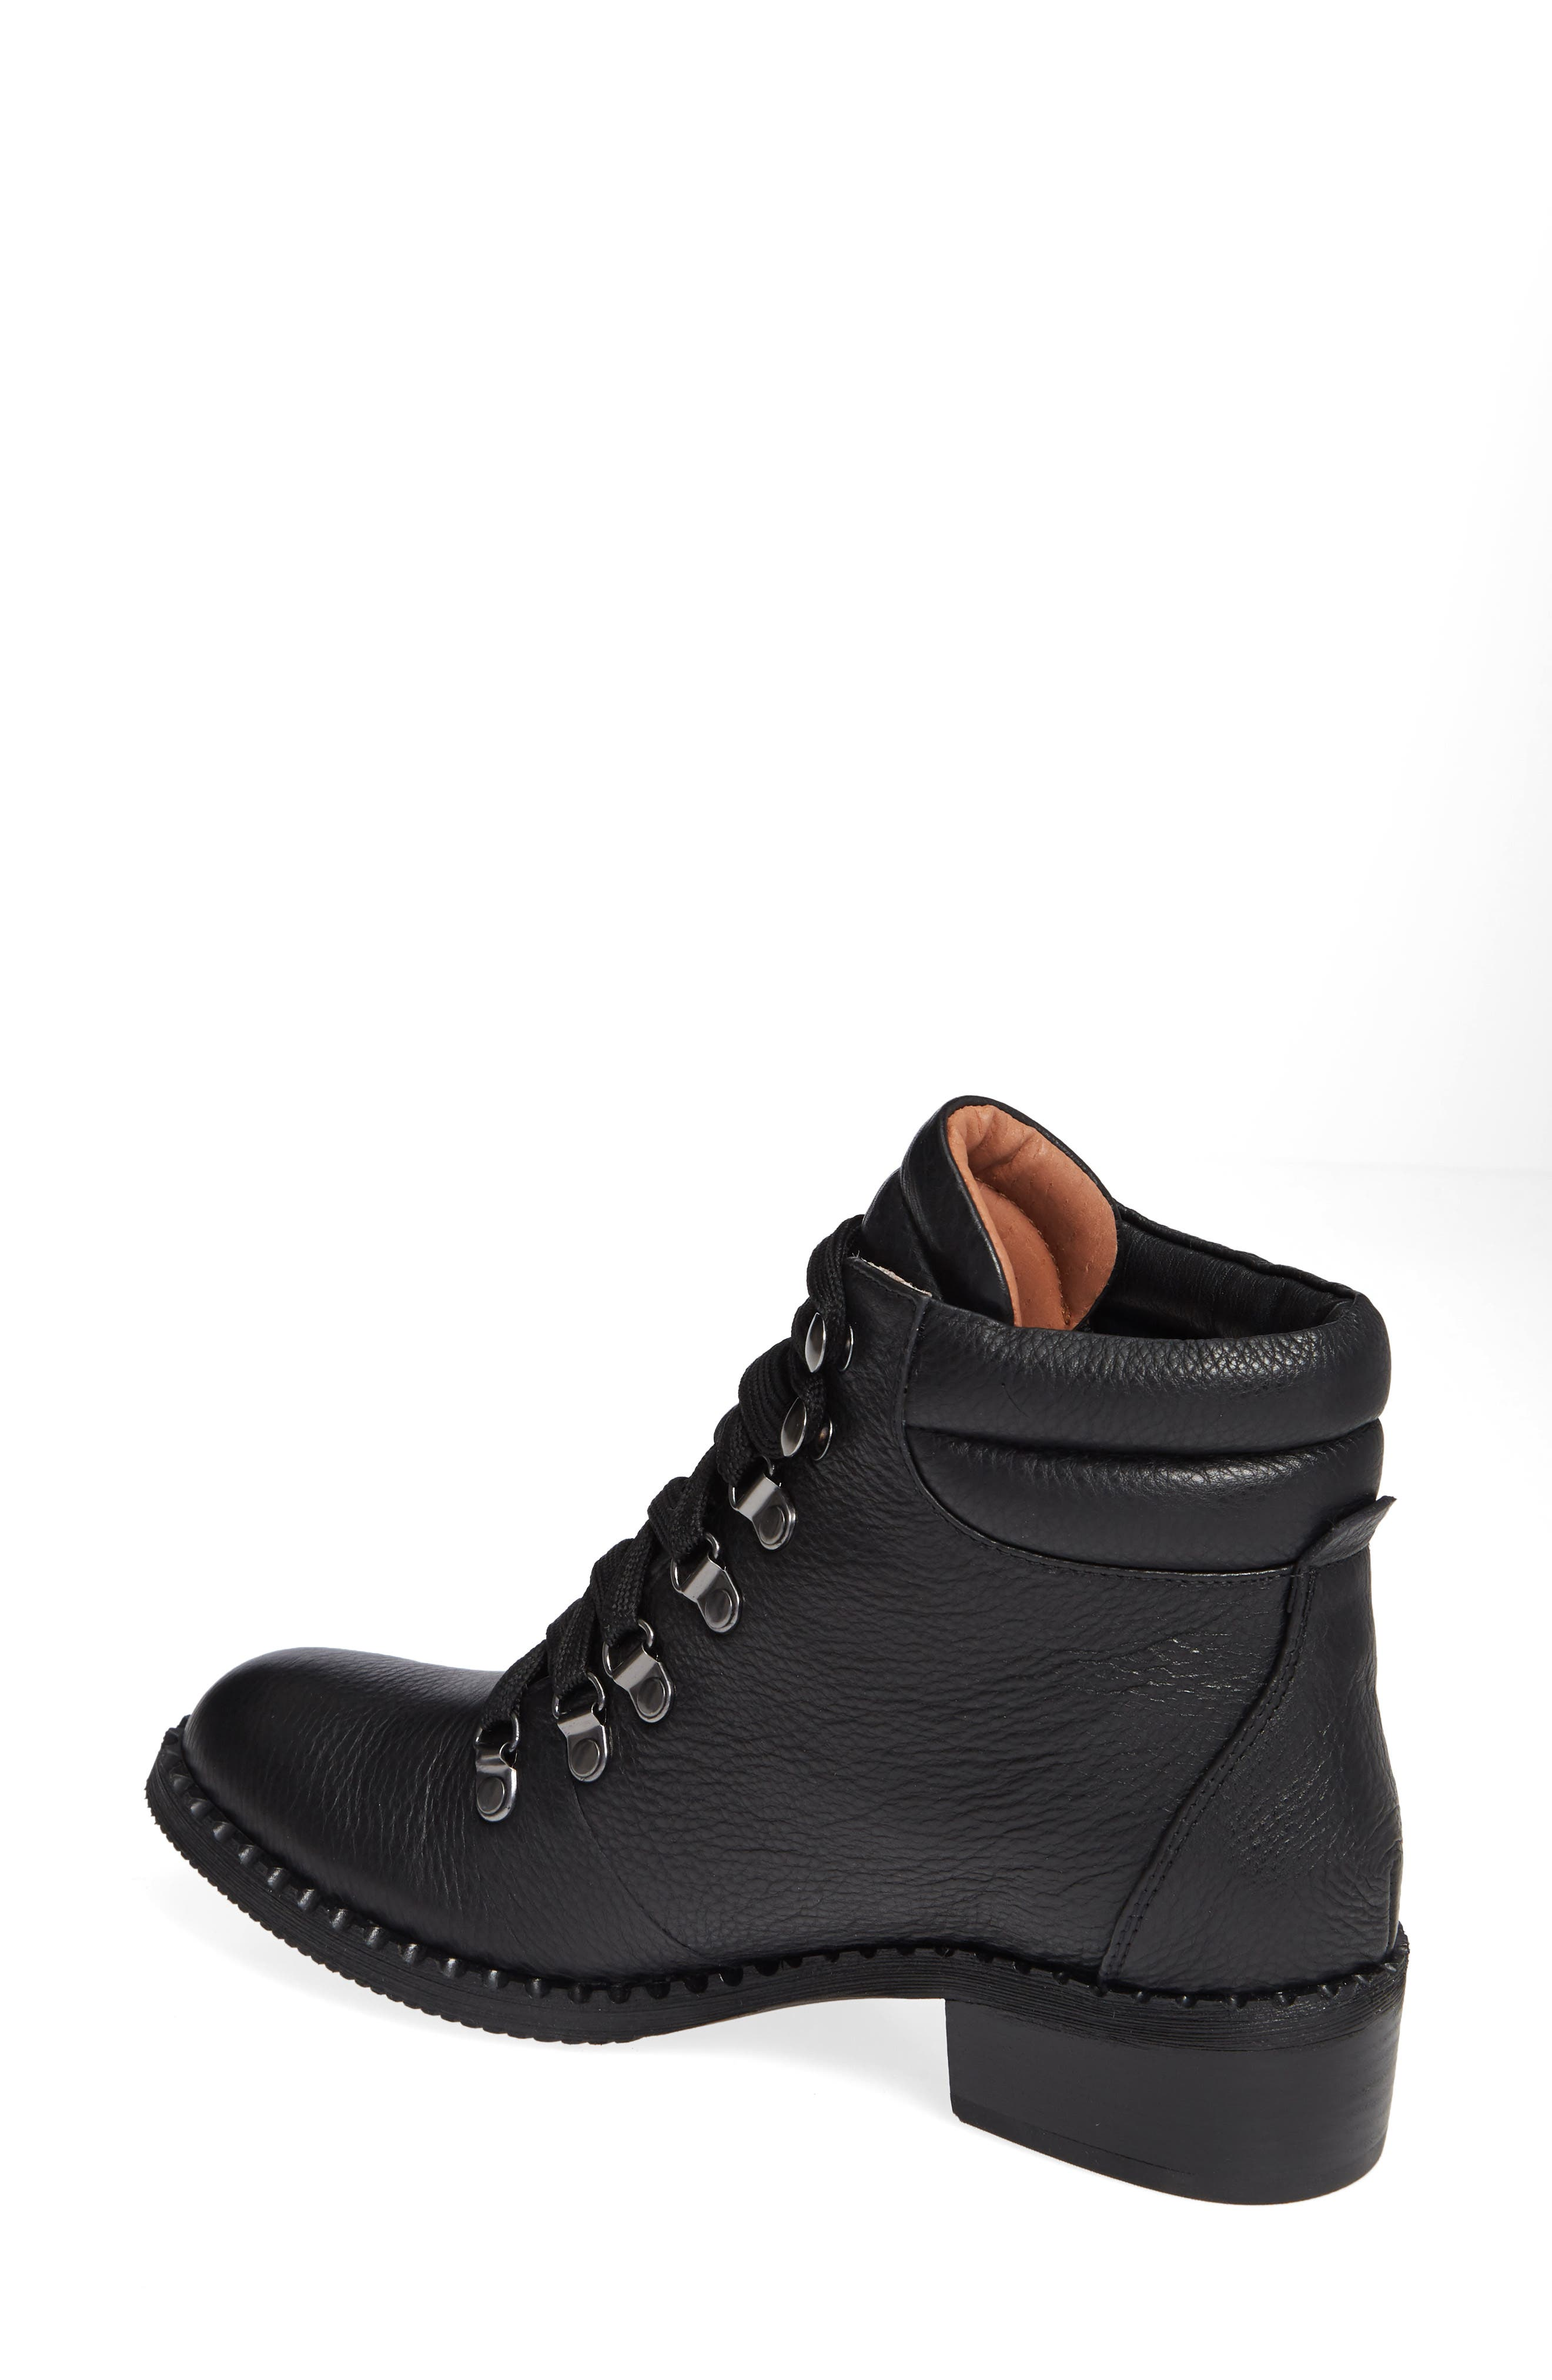 GENTLE SOULS BY KENNETH COLE, Brooklyn Combat Boot, Alternate thumbnail 2, color, BLACK LEATHER